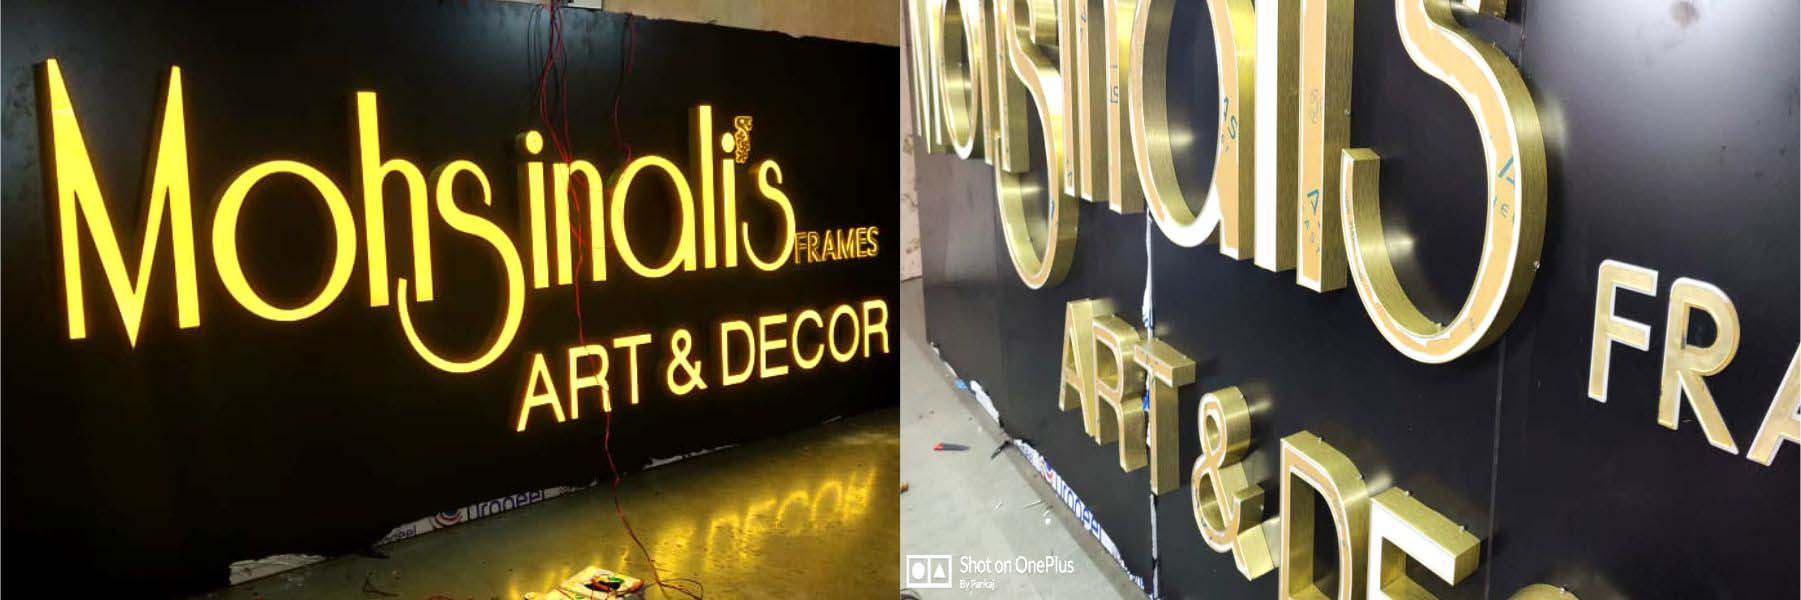 Shop signboard made of channel letters having a gold metallic finish on the sides. Front surface has acrylic and is lit with warm white LEDs